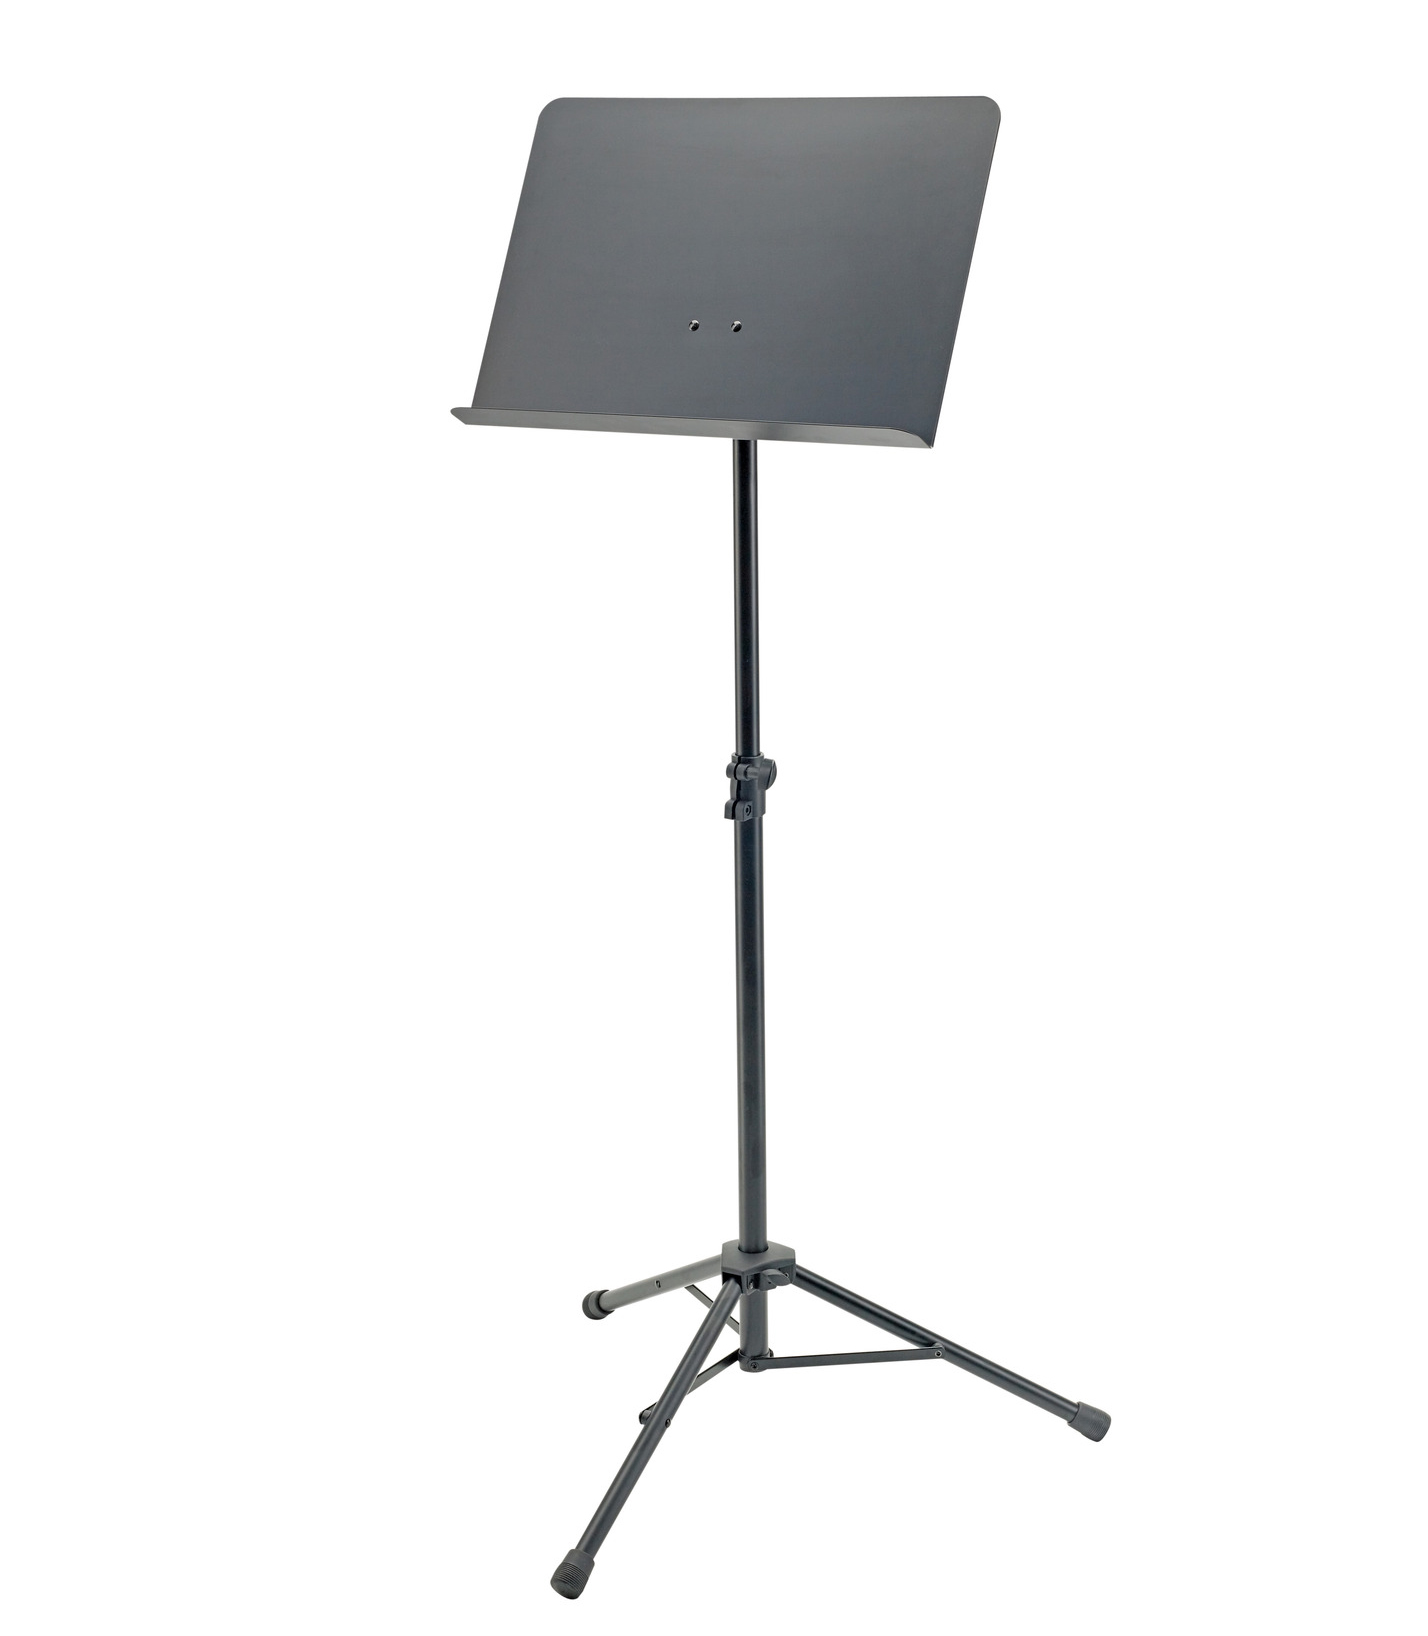 Buy K&M - 11960 000 55 Stable orchestra music stand made out